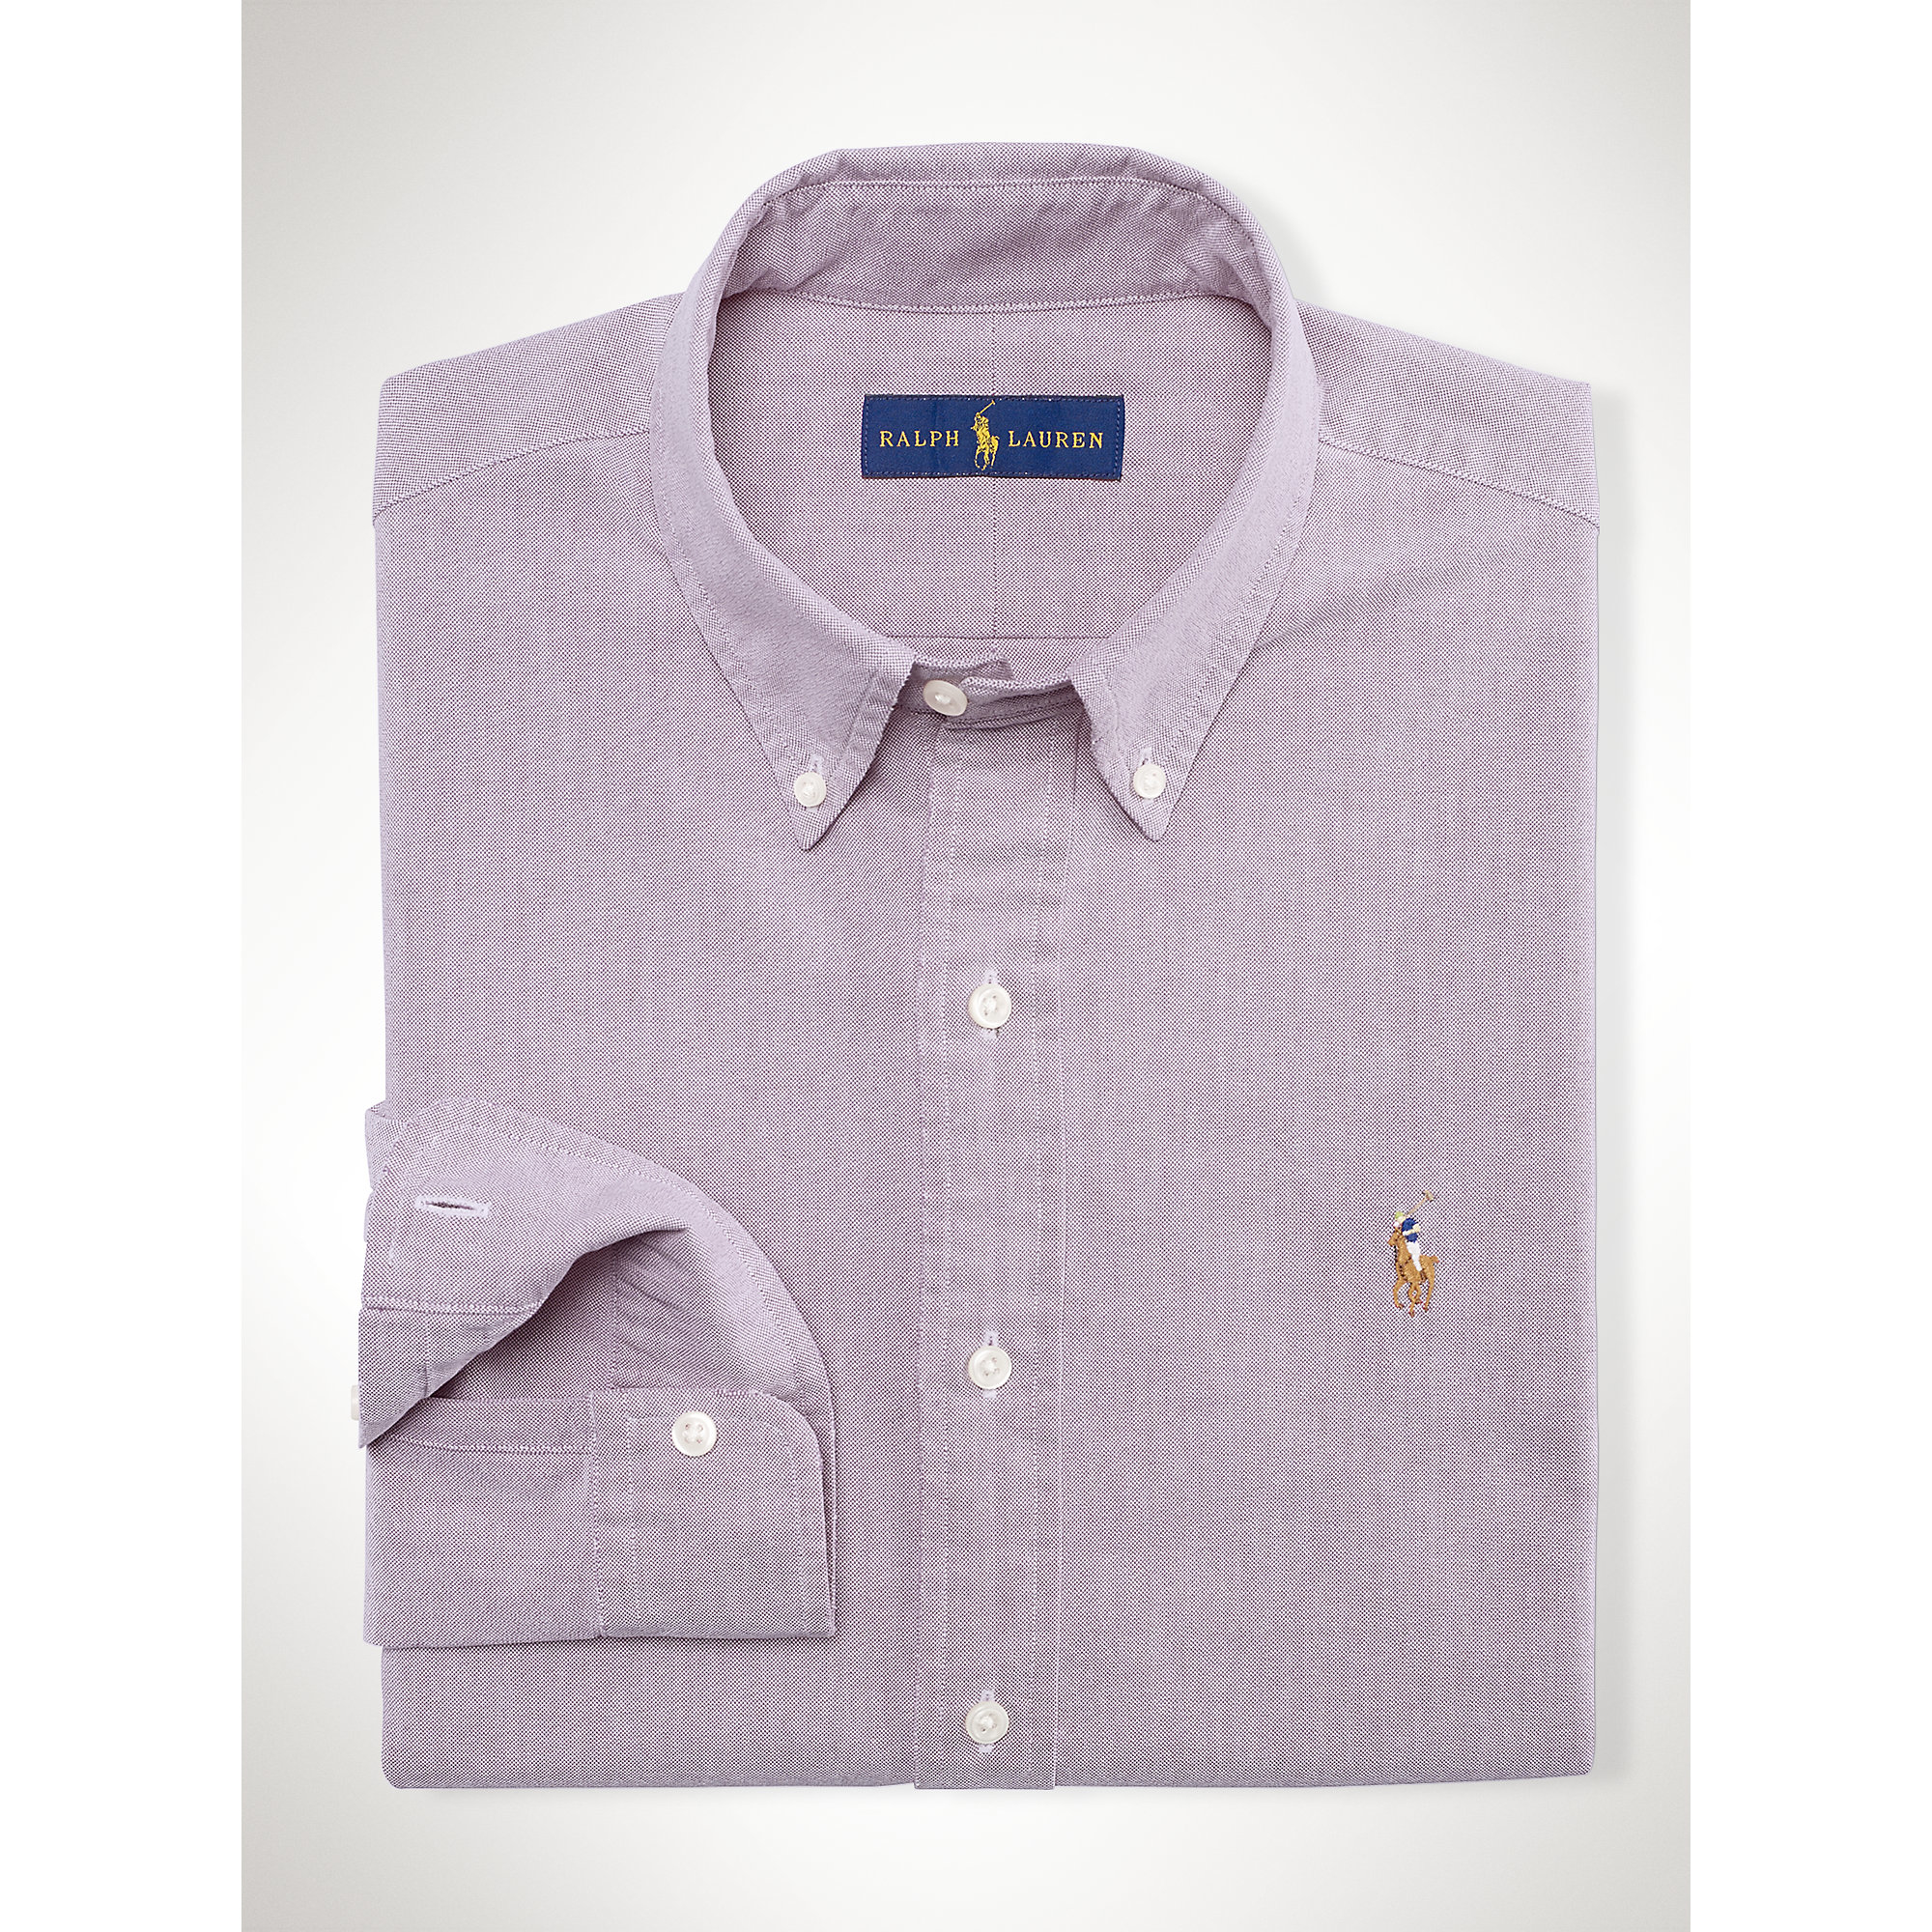 Polo ralph lauren solid oxford sport shirt in purple for for Royal purple mens dress shirts